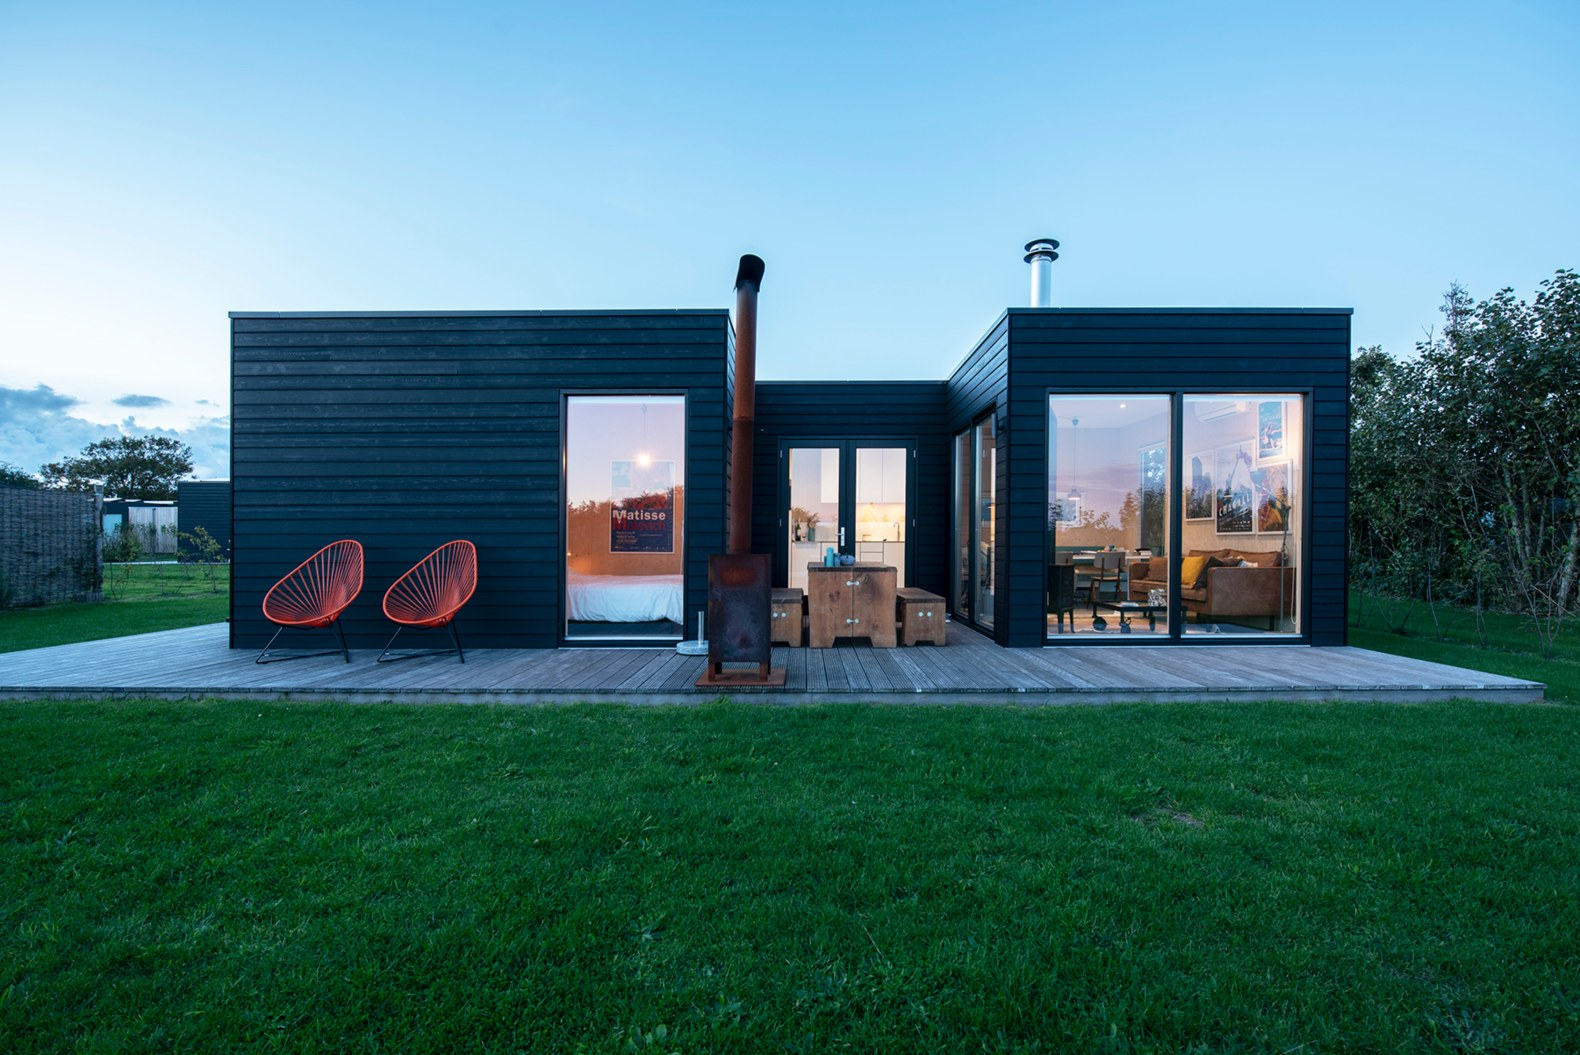 Minimalist cabin in the Netherlands allows glampers to relax in style